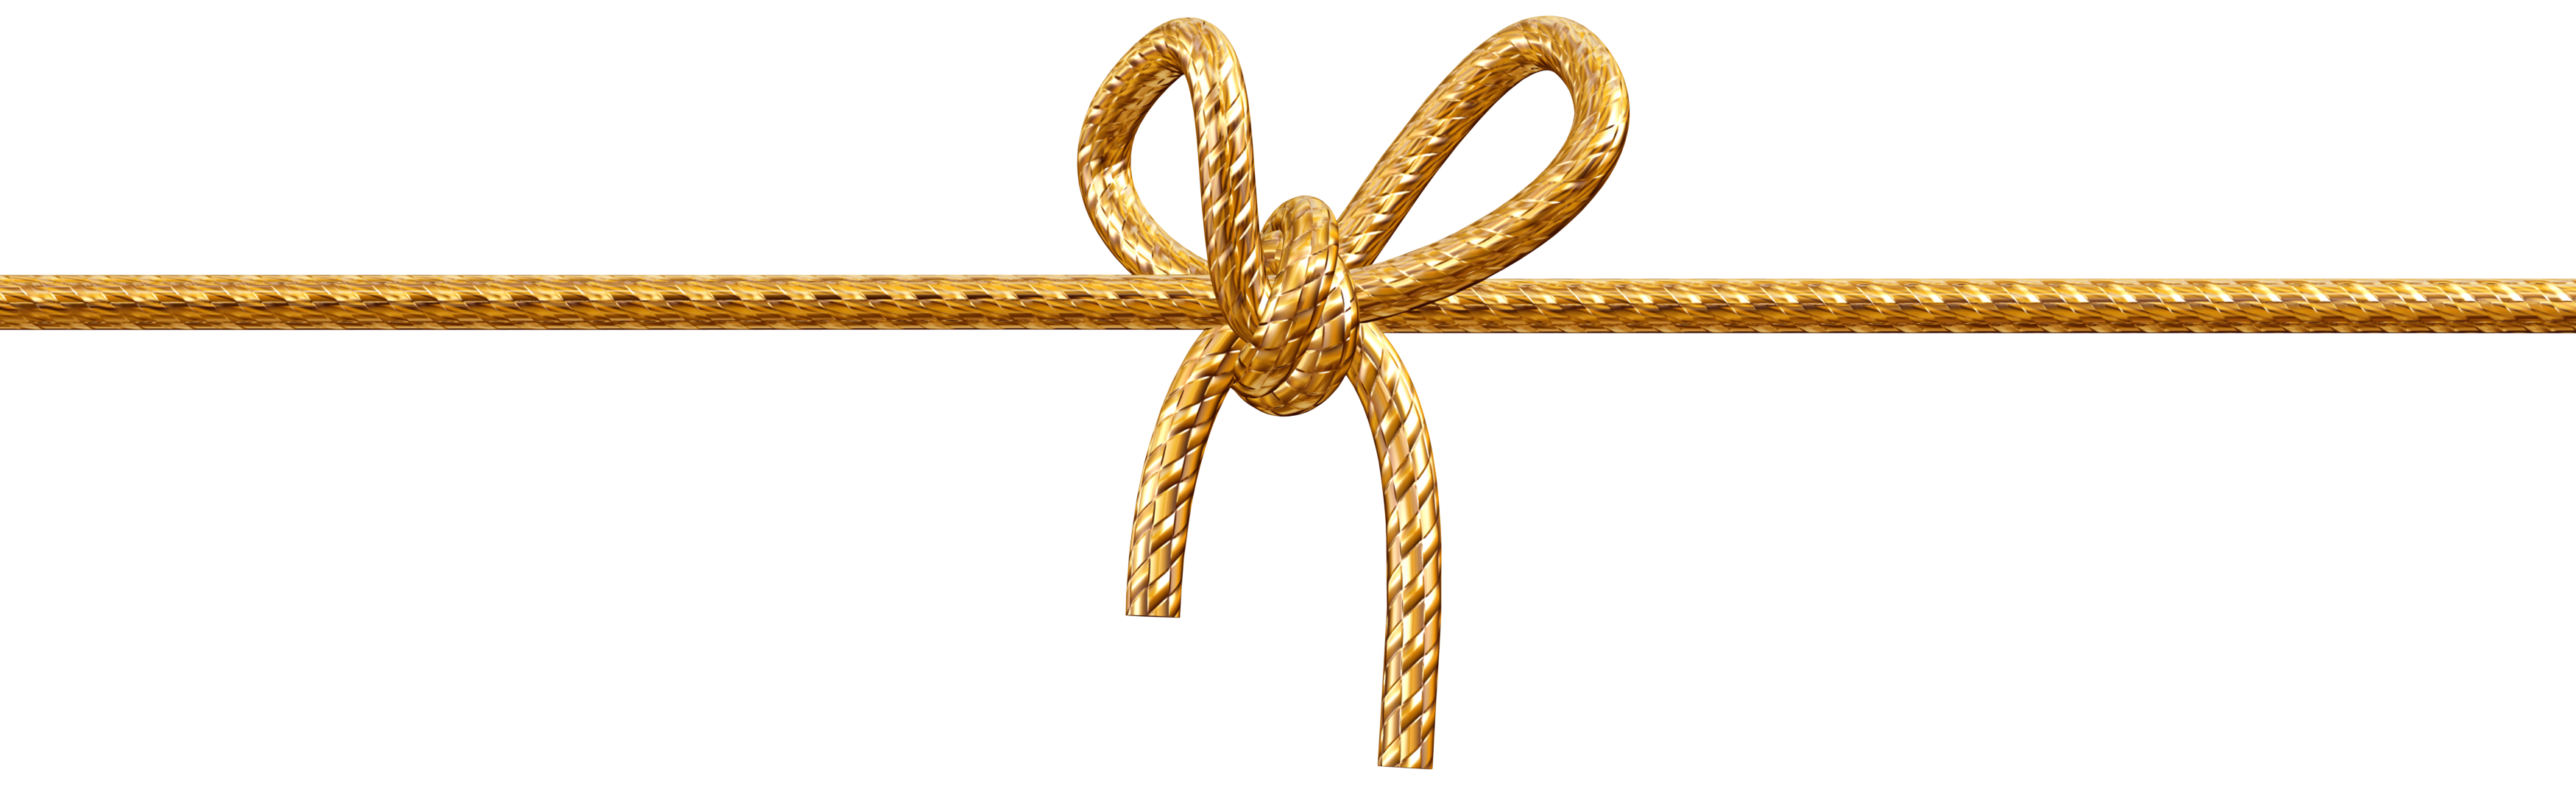 clip art download Rope png free icons. Knot clipart